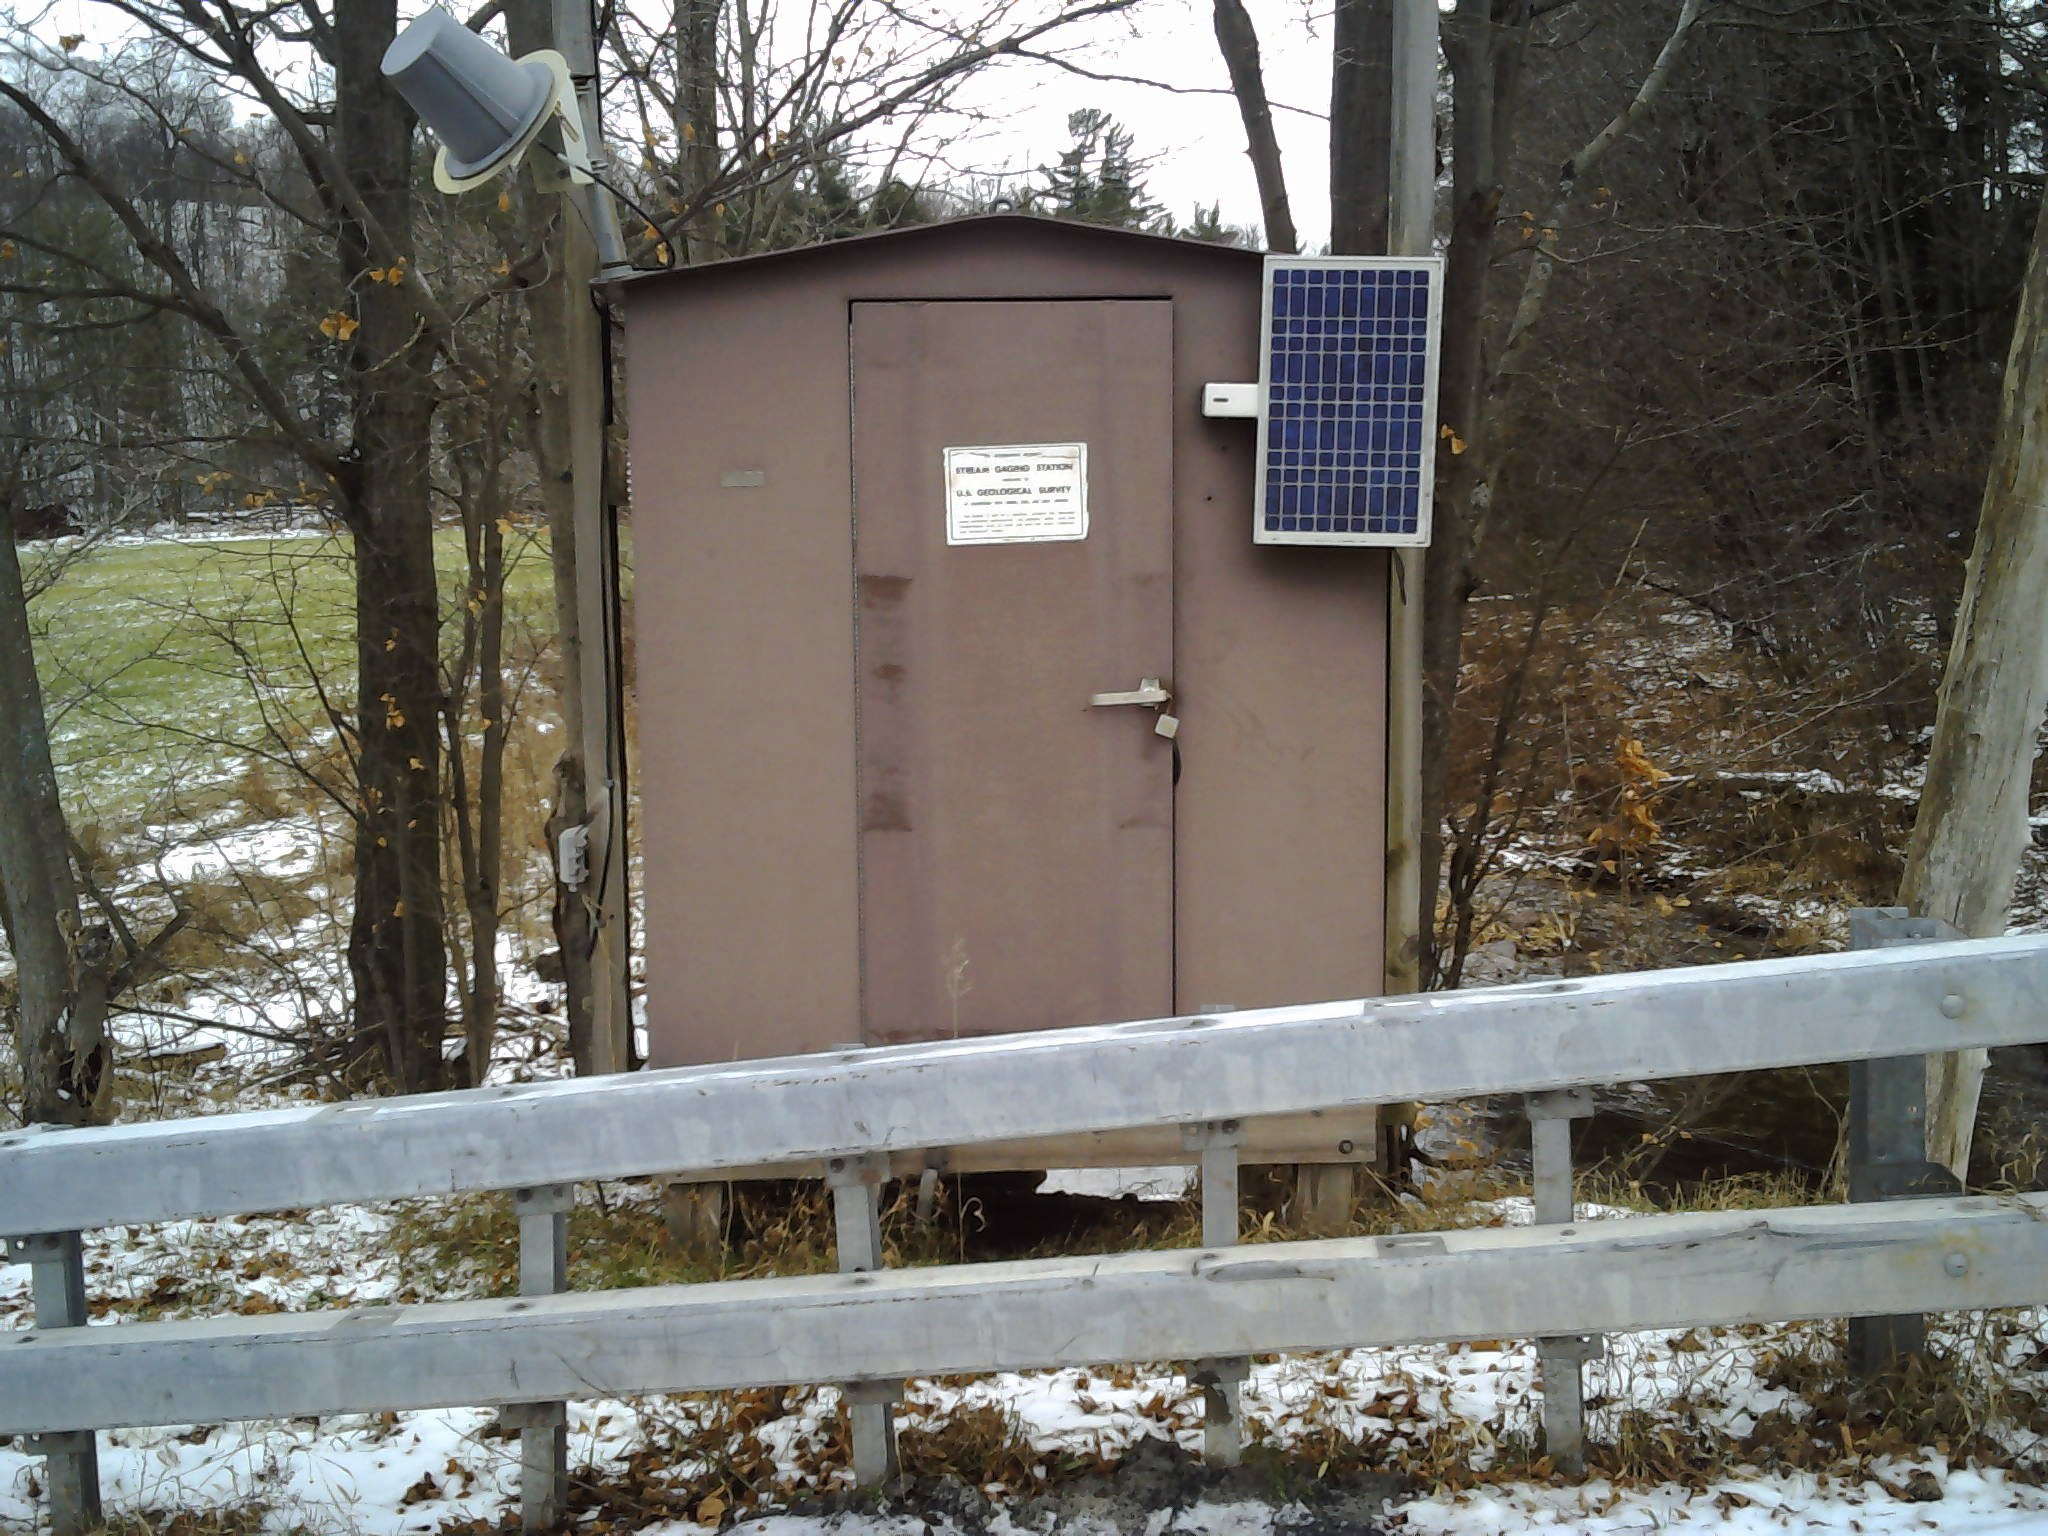 Photo of station on TOWN BROOK SOUTHEAST OF HOBART, NY